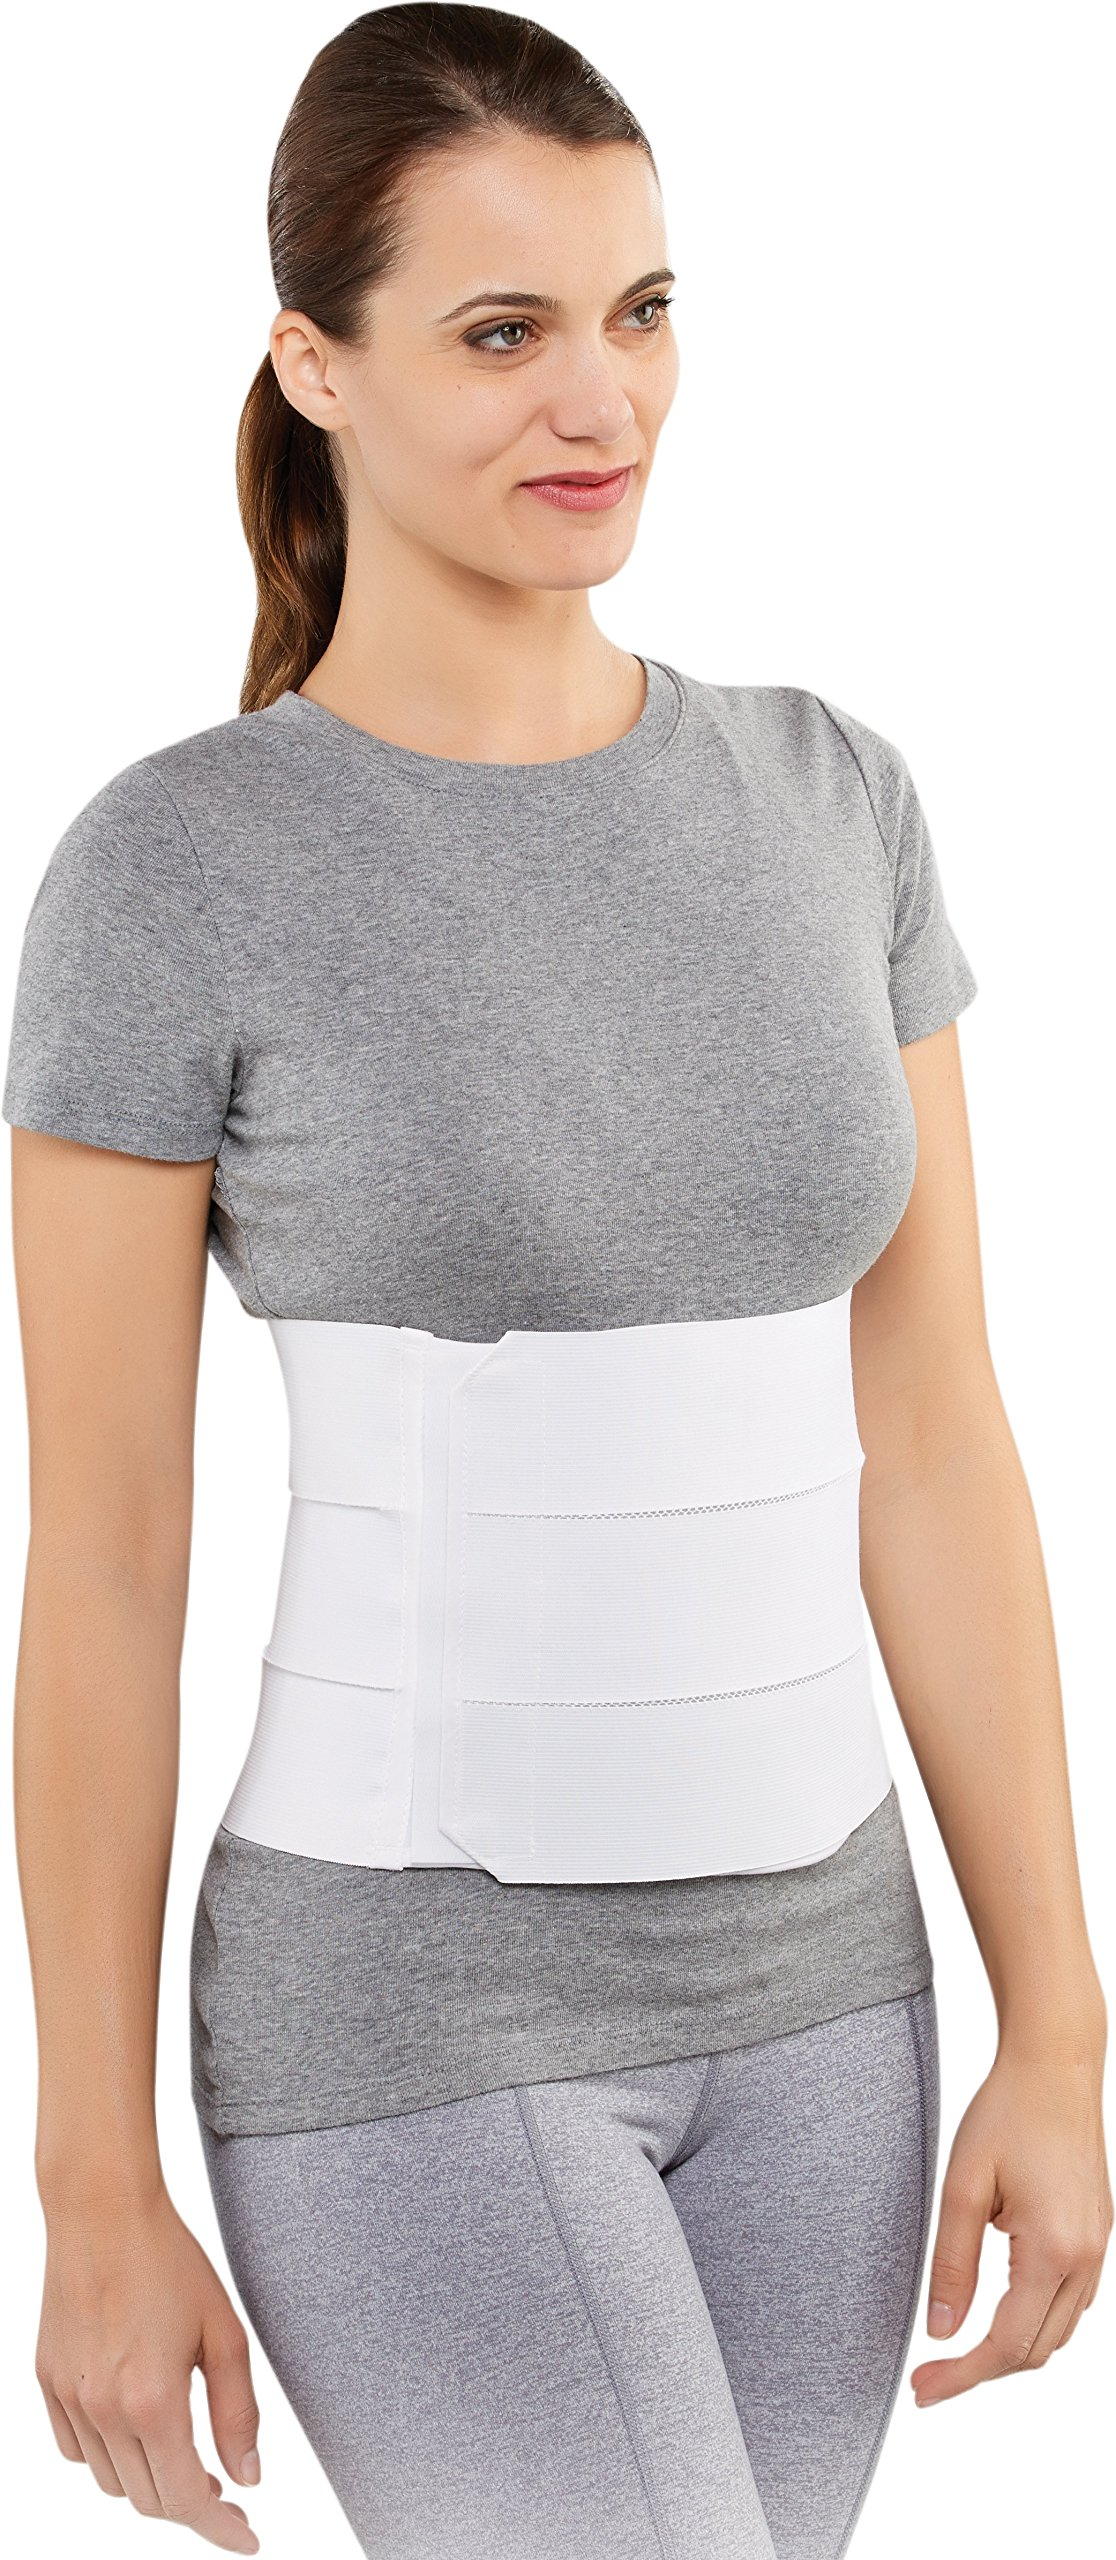 Bell-Horn Elastic Abdominal Support Binder, Small/Medium (Waist: 30'' - 45'')